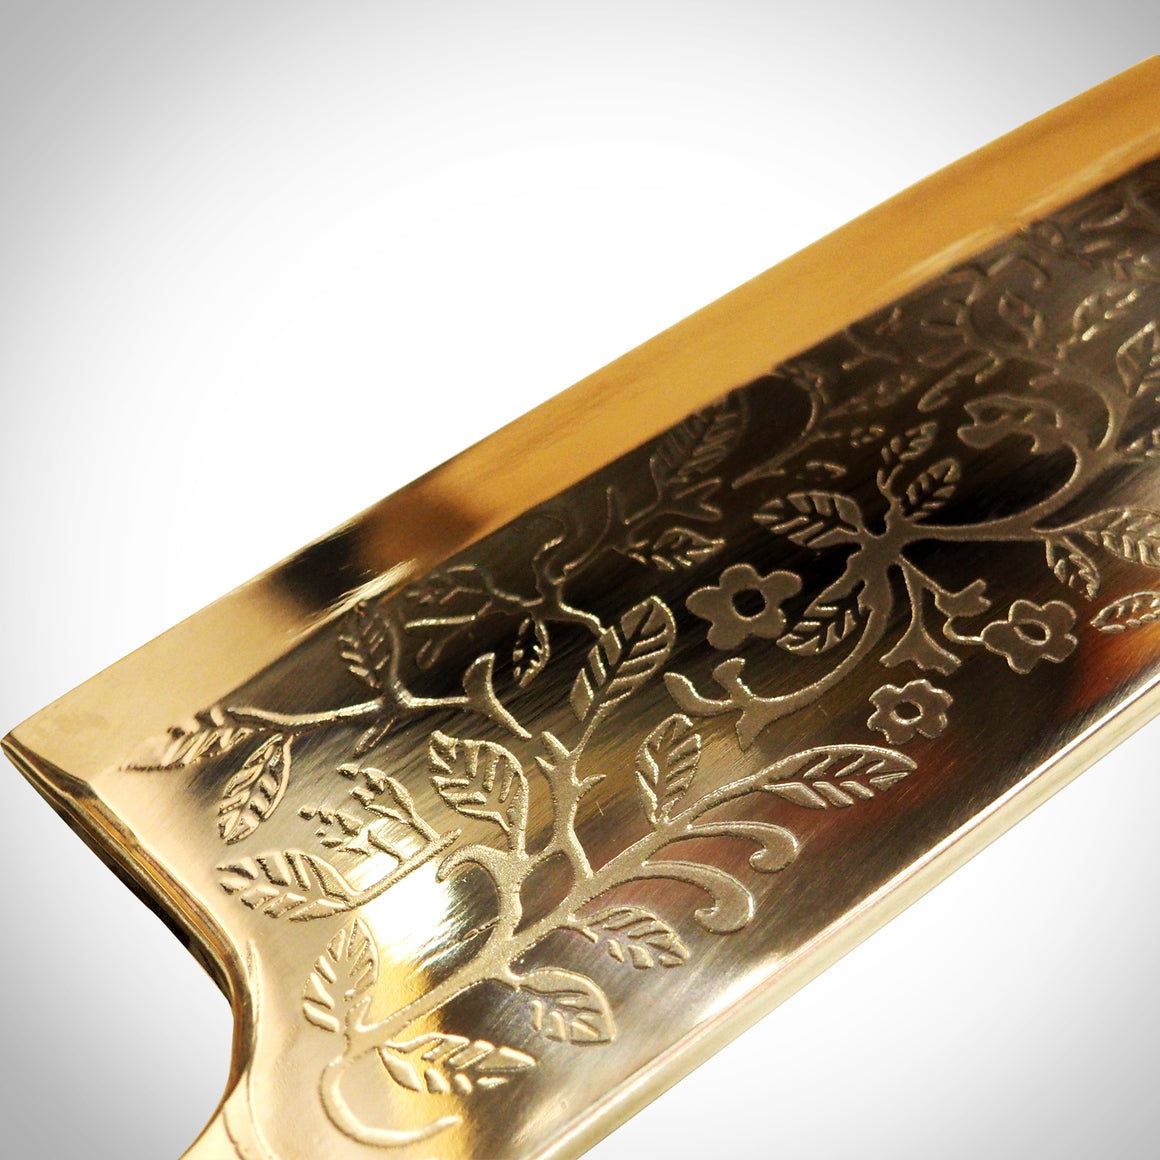 Alice madness returns Vorpal blade blade detail close up